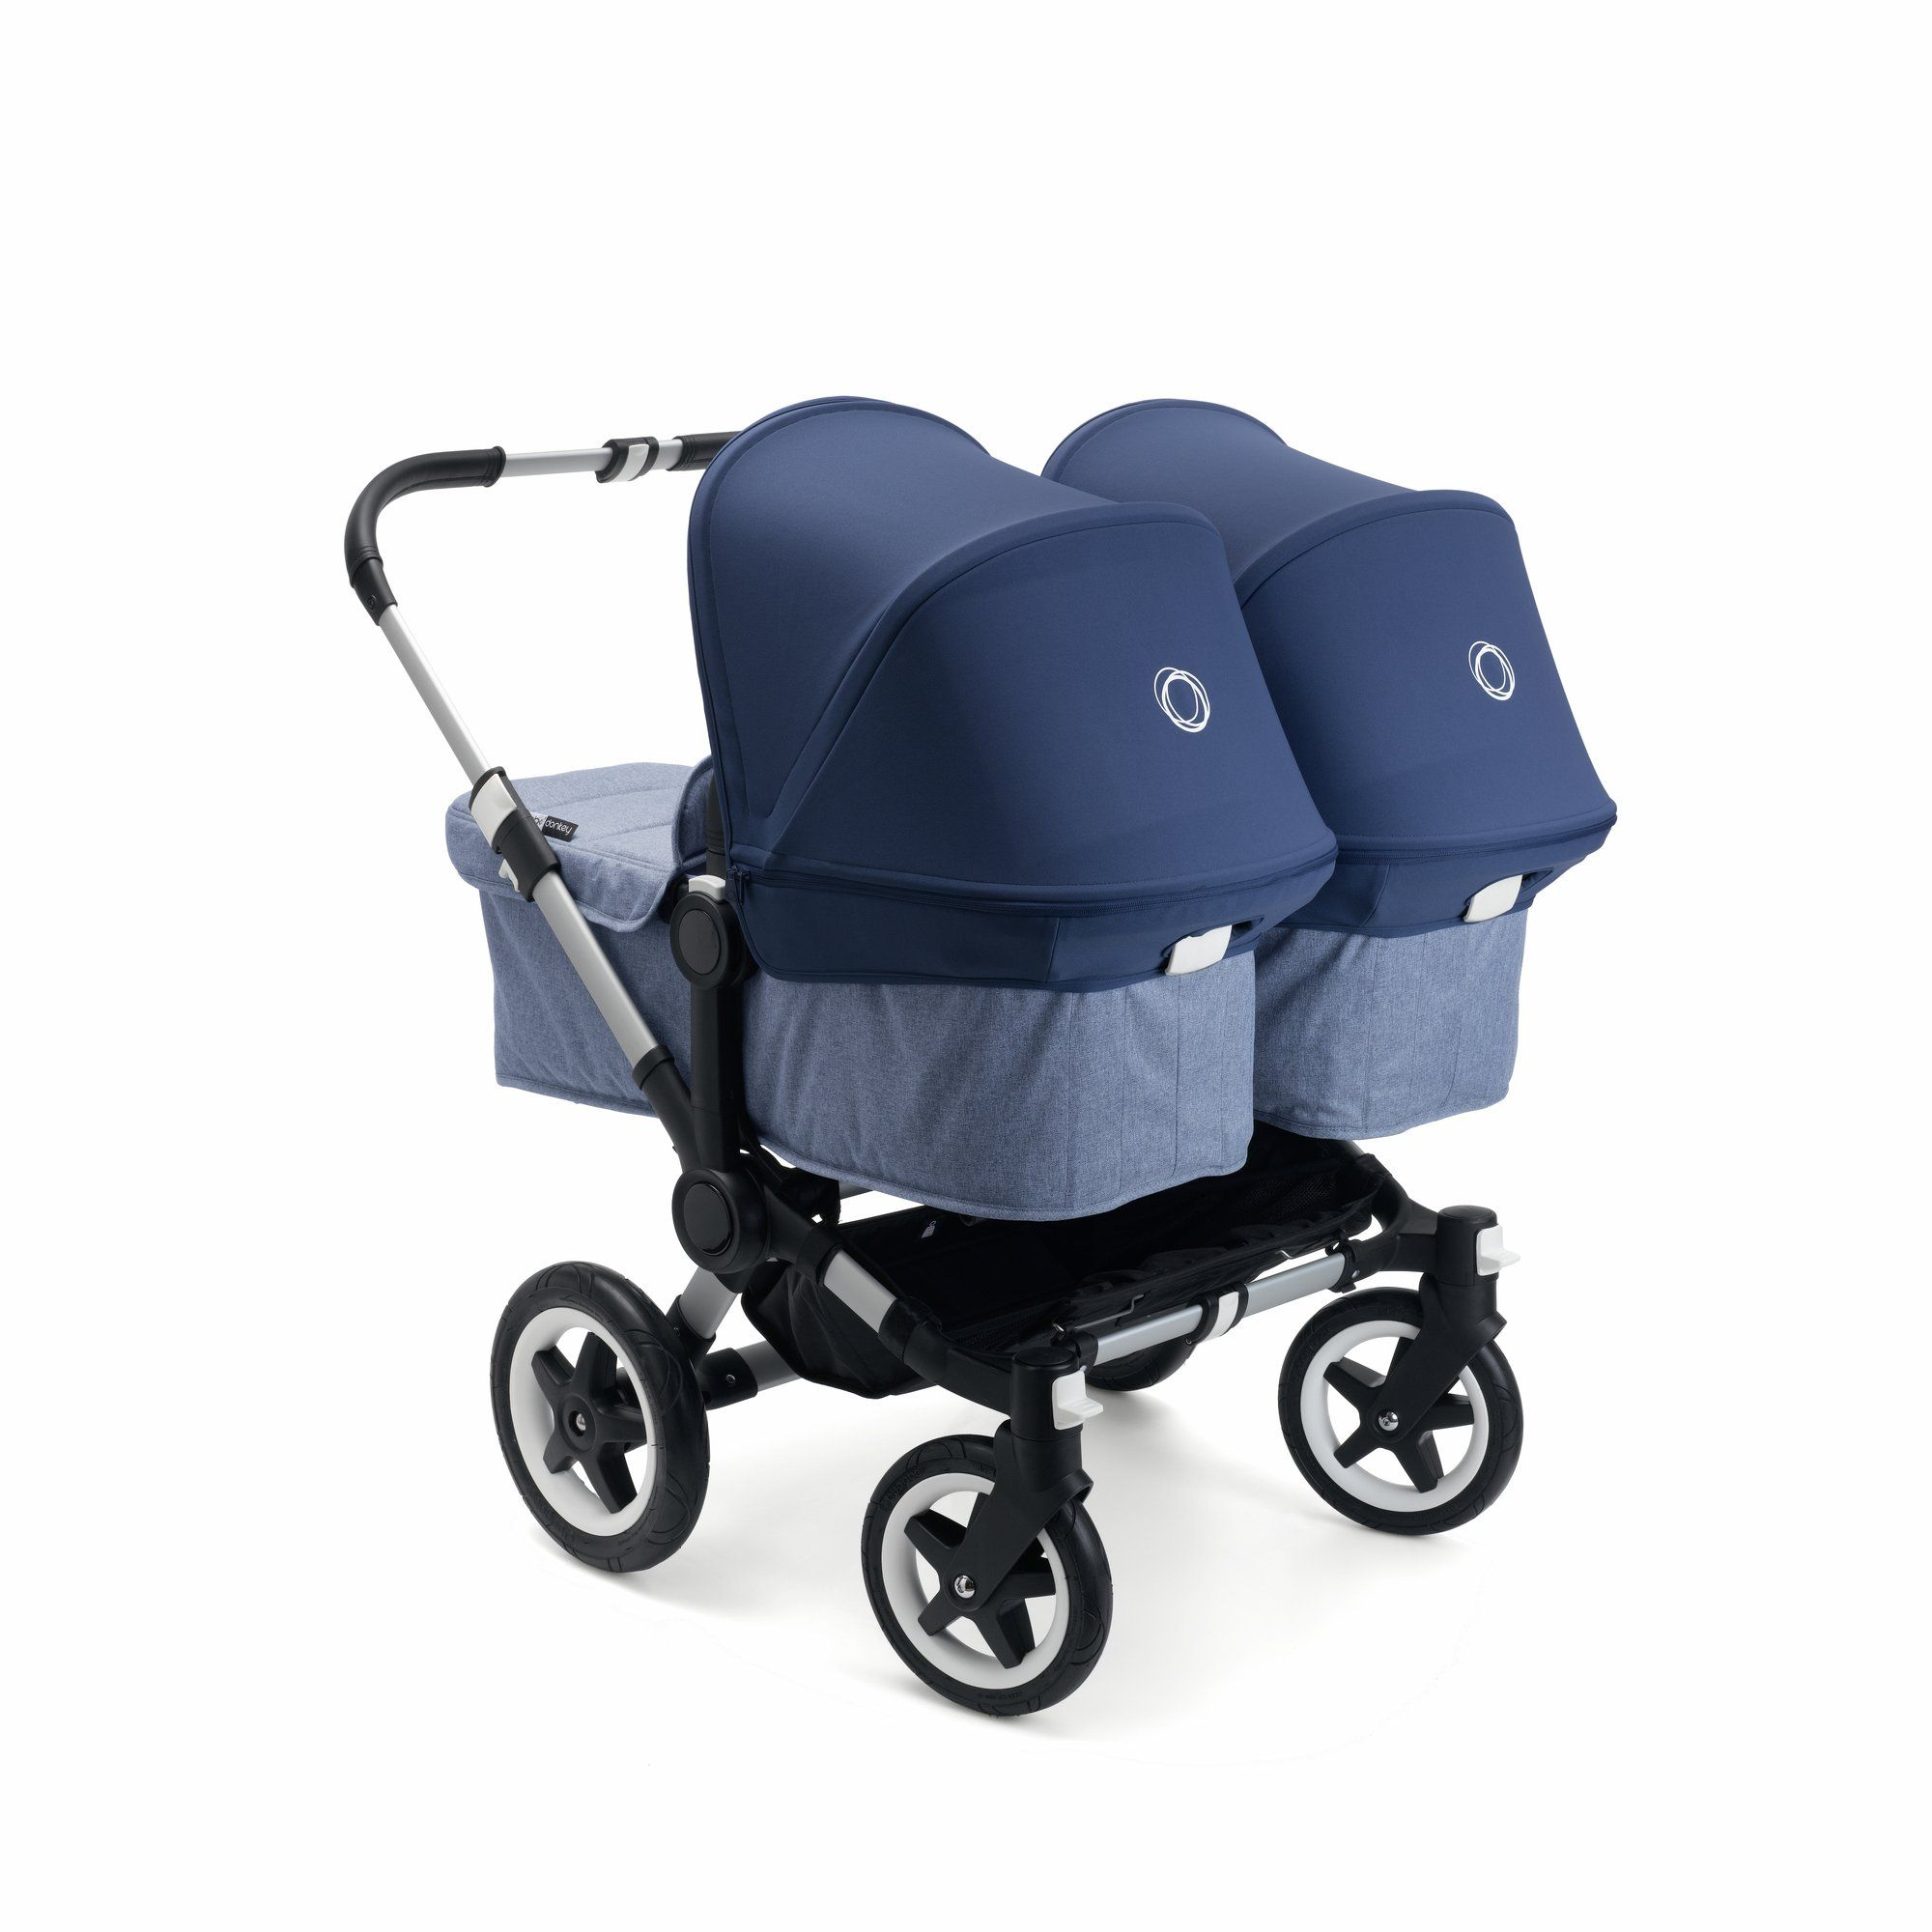 Free shipping and no sales tax on the Bugaboo Donkey2 twin